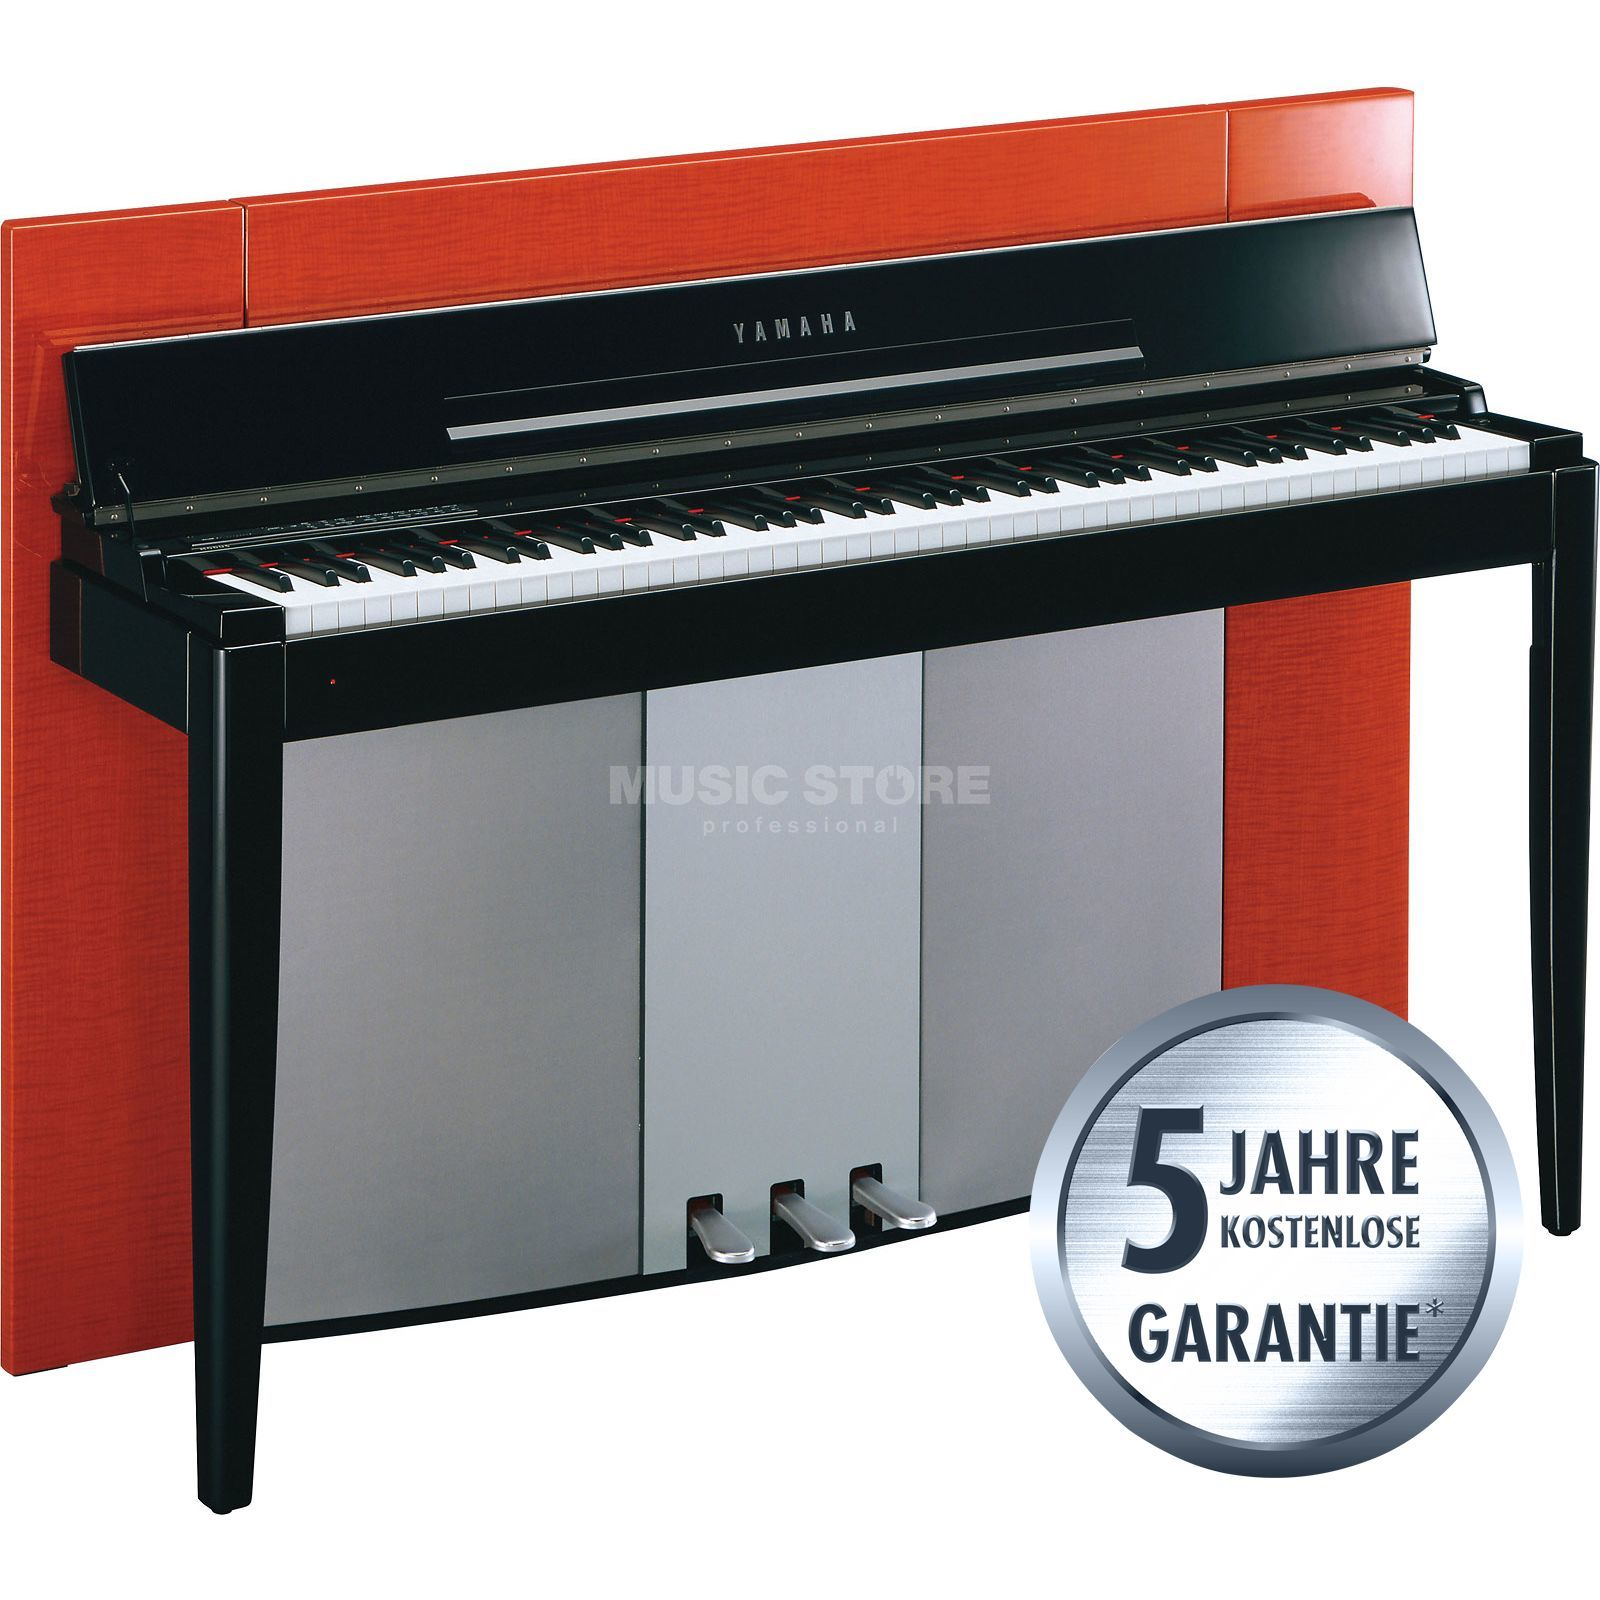 Yamaha Digital Piano Polished Orange  Produktbillede